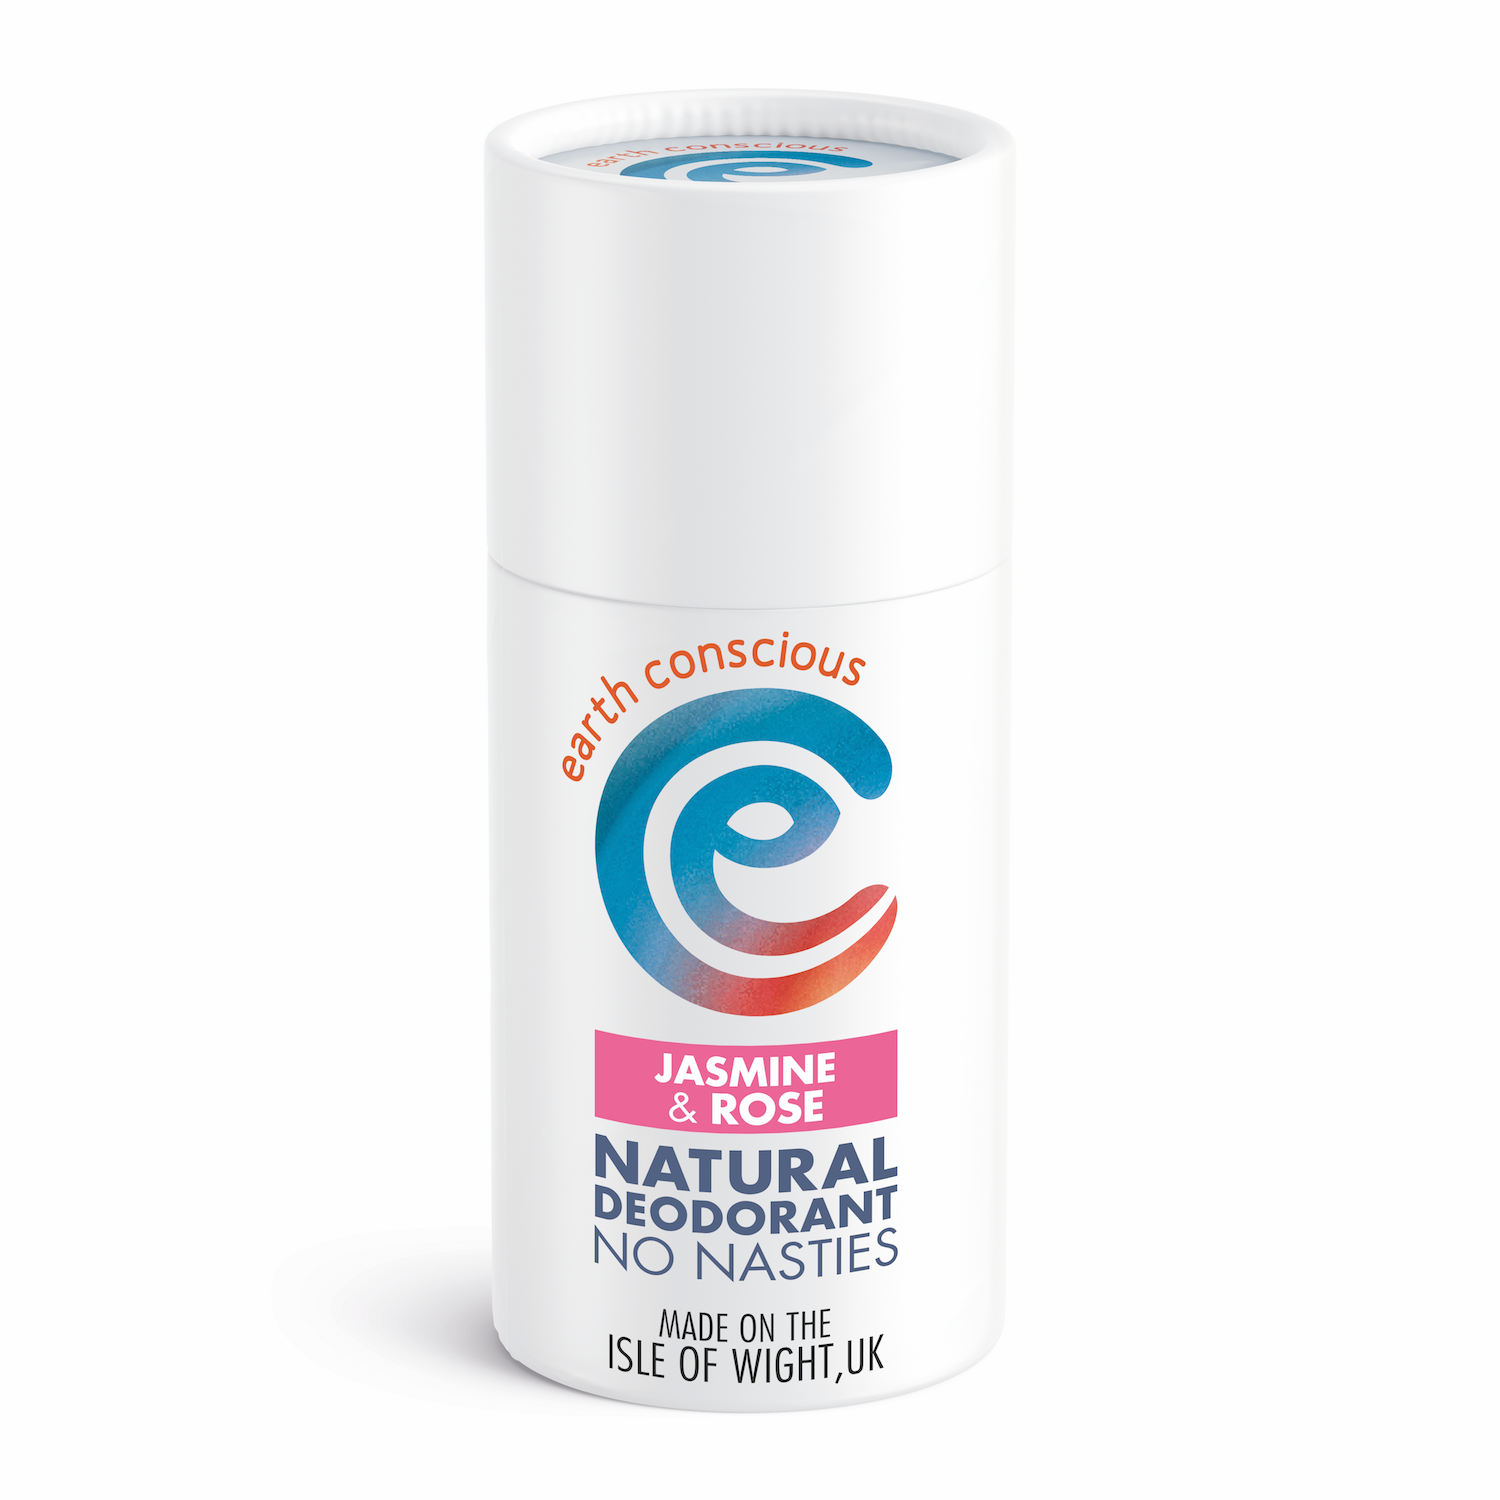 Earth Conscious natural deodorant stick jasmine and rose